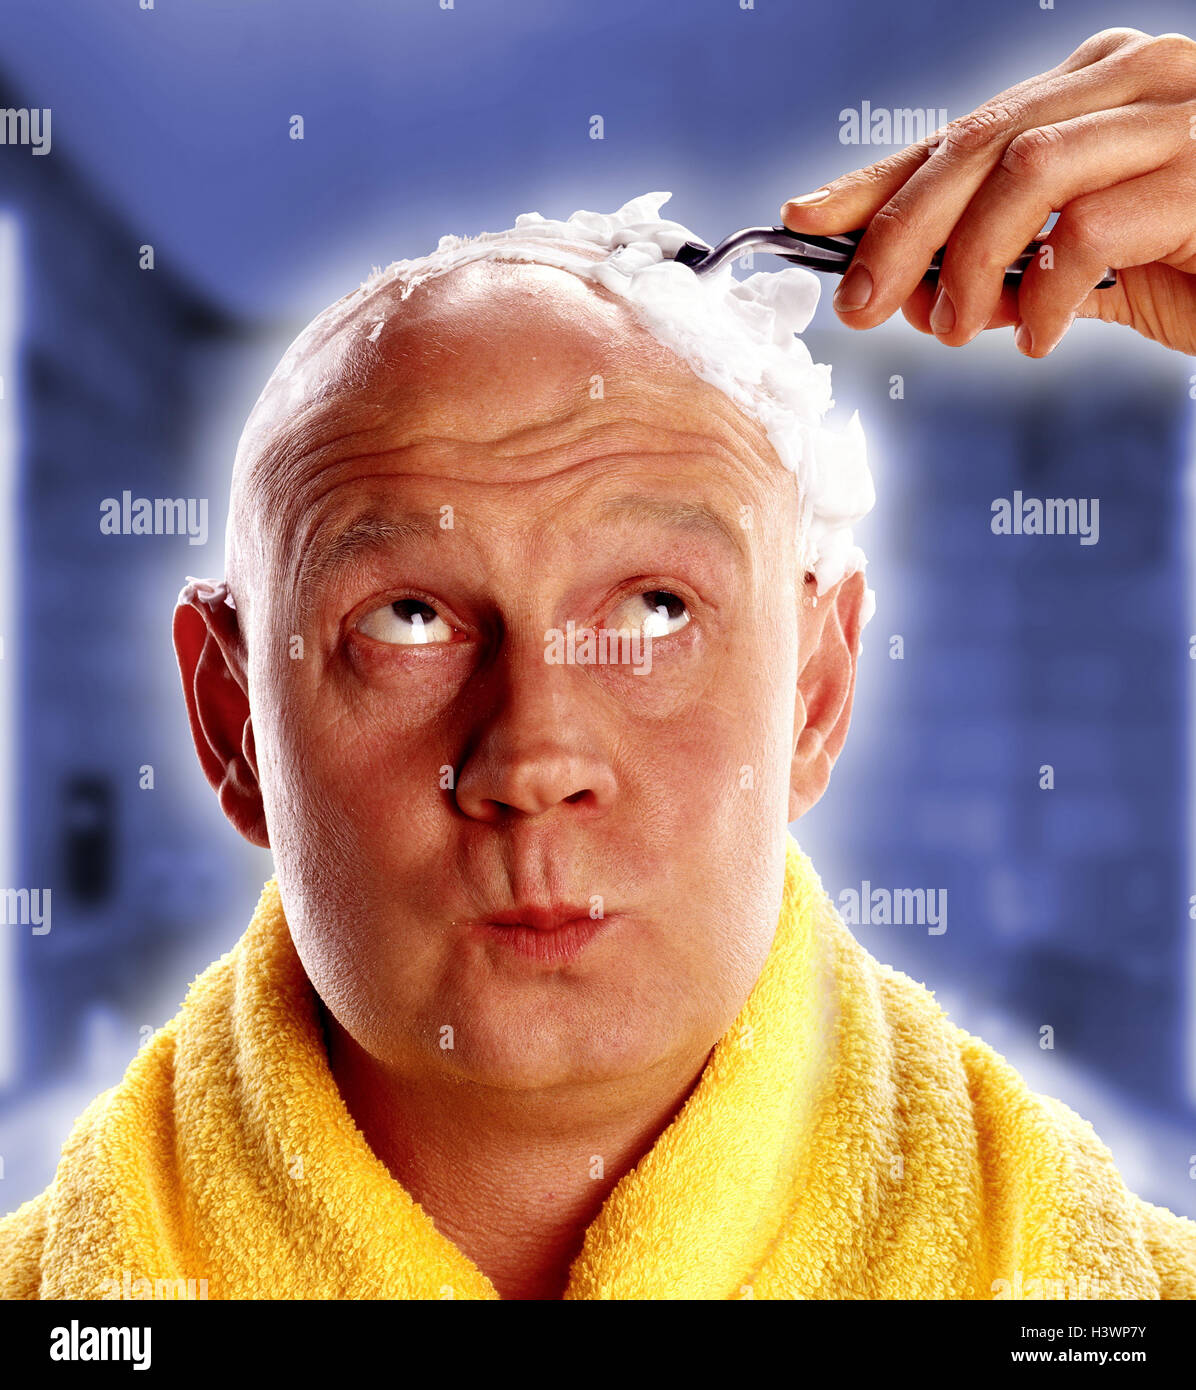 Head shave stock photos head shave stock images alamy man towel head shave bald head facial play portrait buycottarizona Image collections